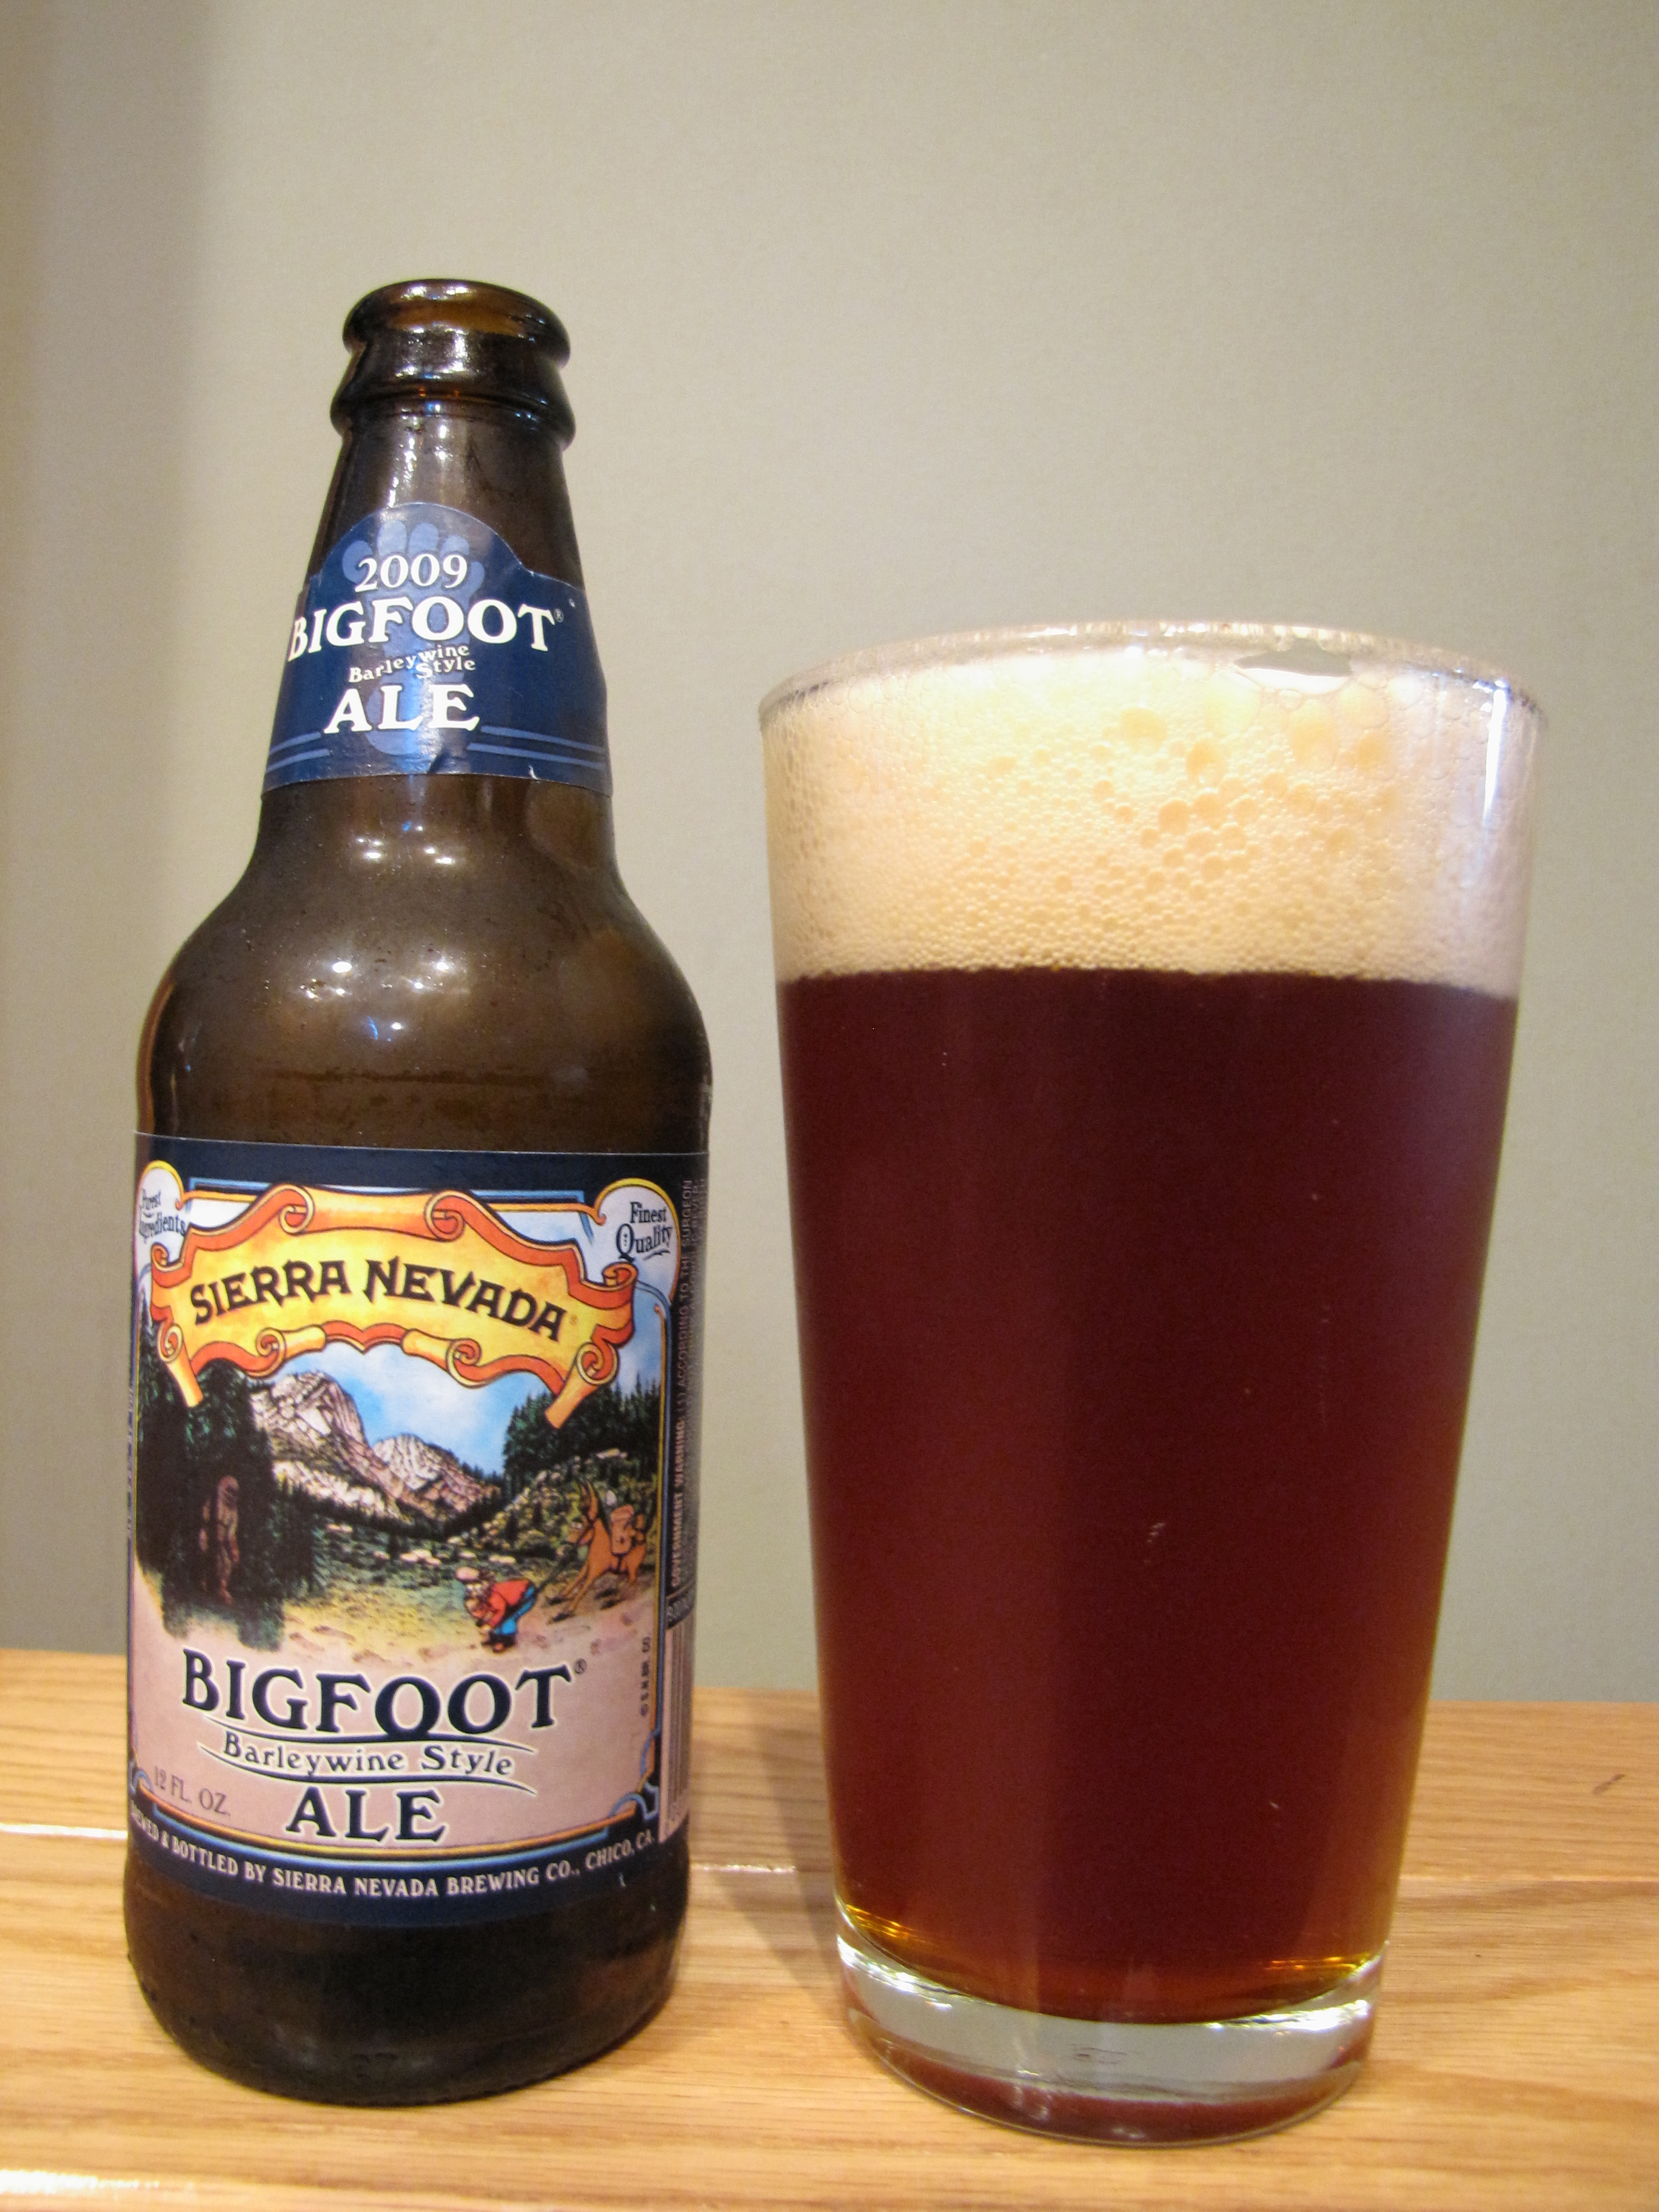 Sierra Nevada Bigfoot Barleywine Style Ale (2009)